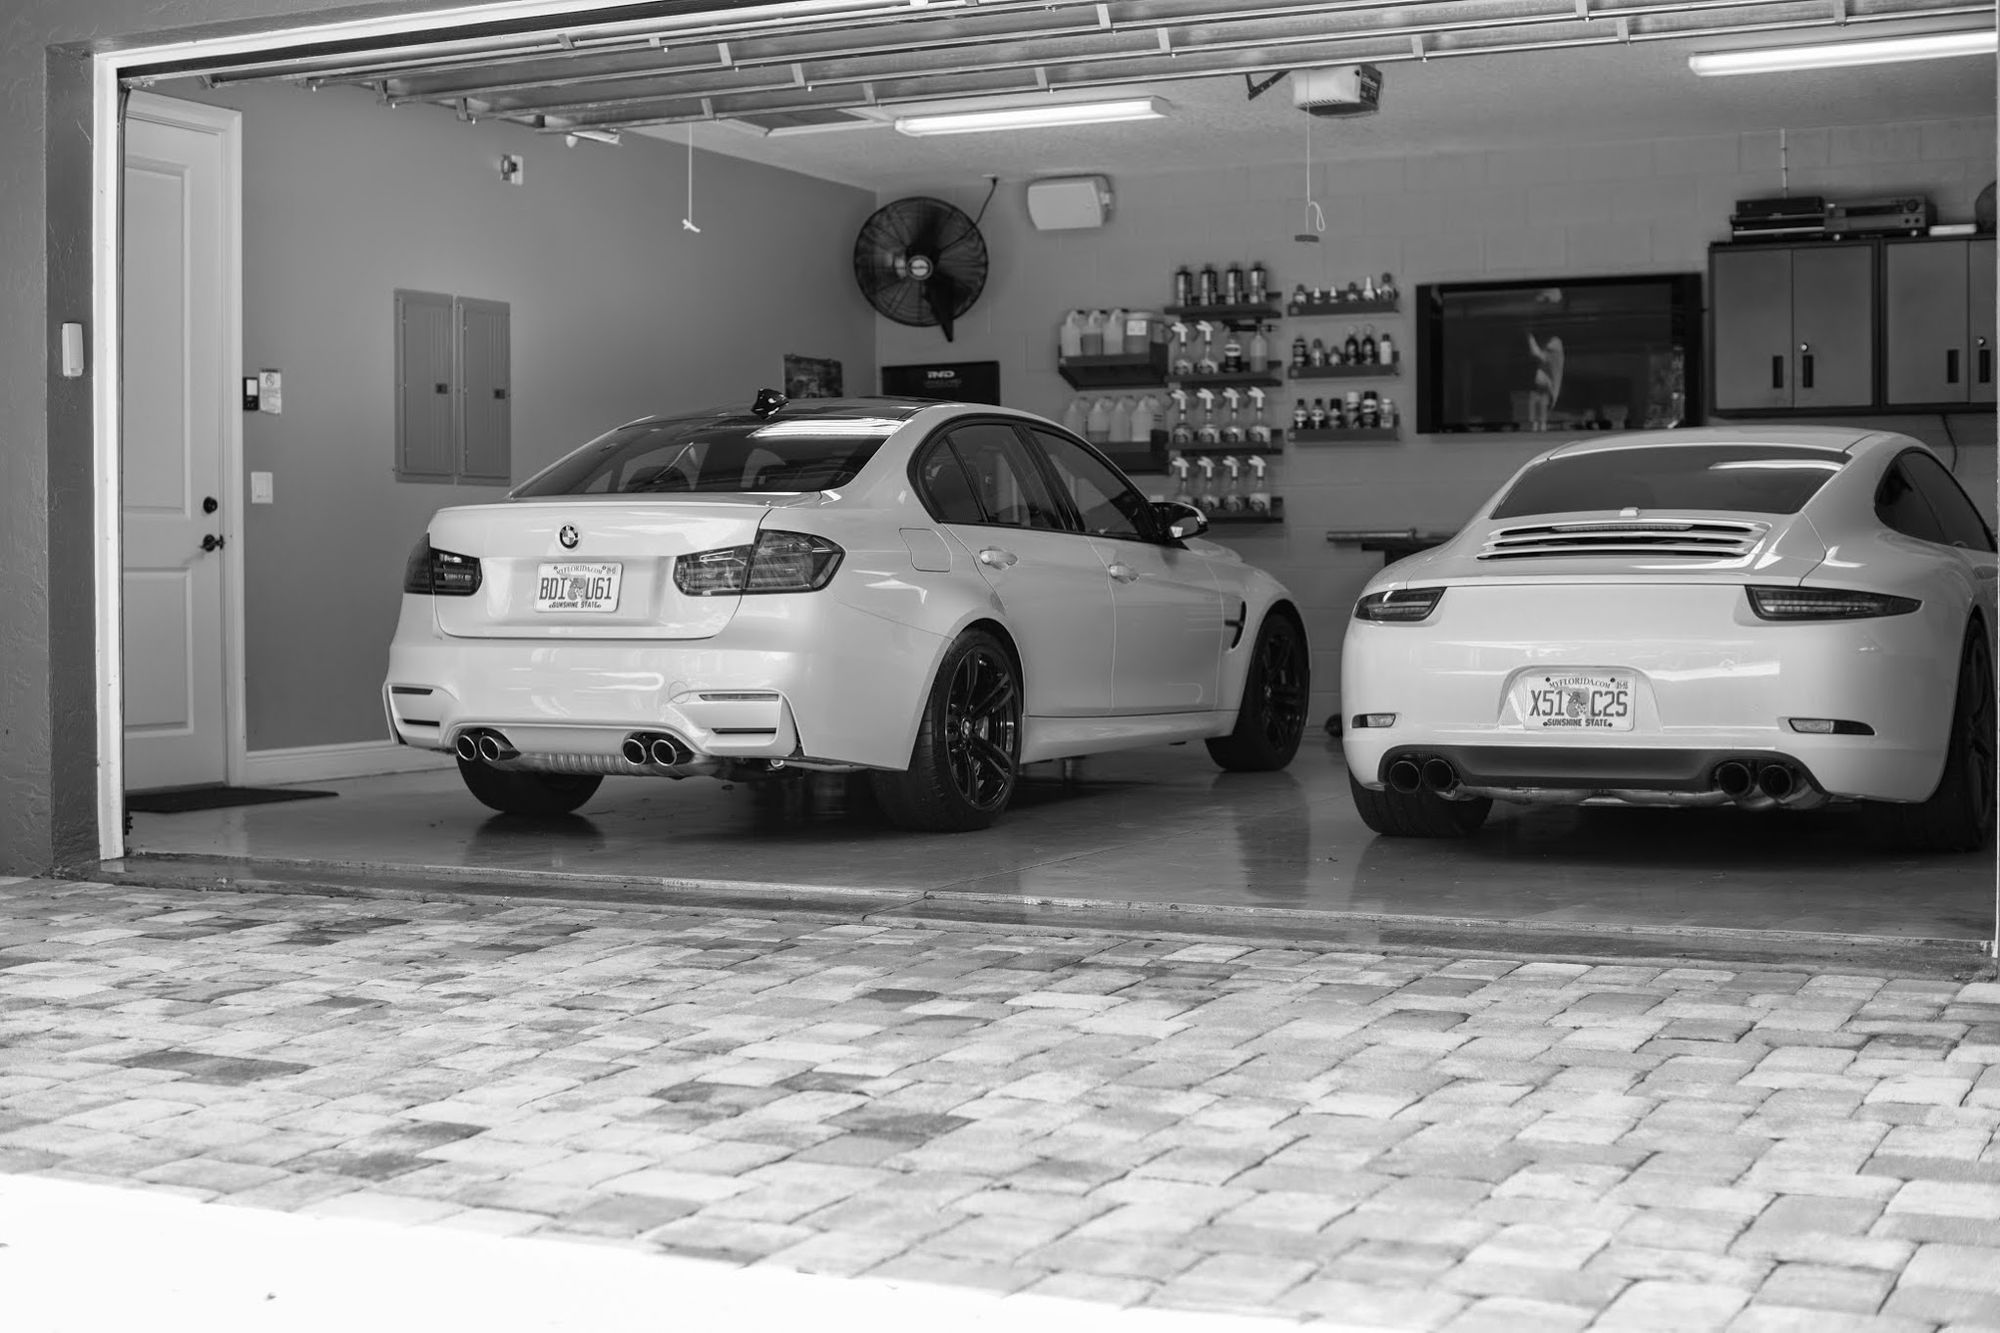 My Comparison Of The 991 C2s To Gt3 Porsche Engine Diagram Like Most Lovers Pursuit Began Many Years Ago As A Young Boy Ive Always Wanted 911 For Some Reason I Just Dont Have